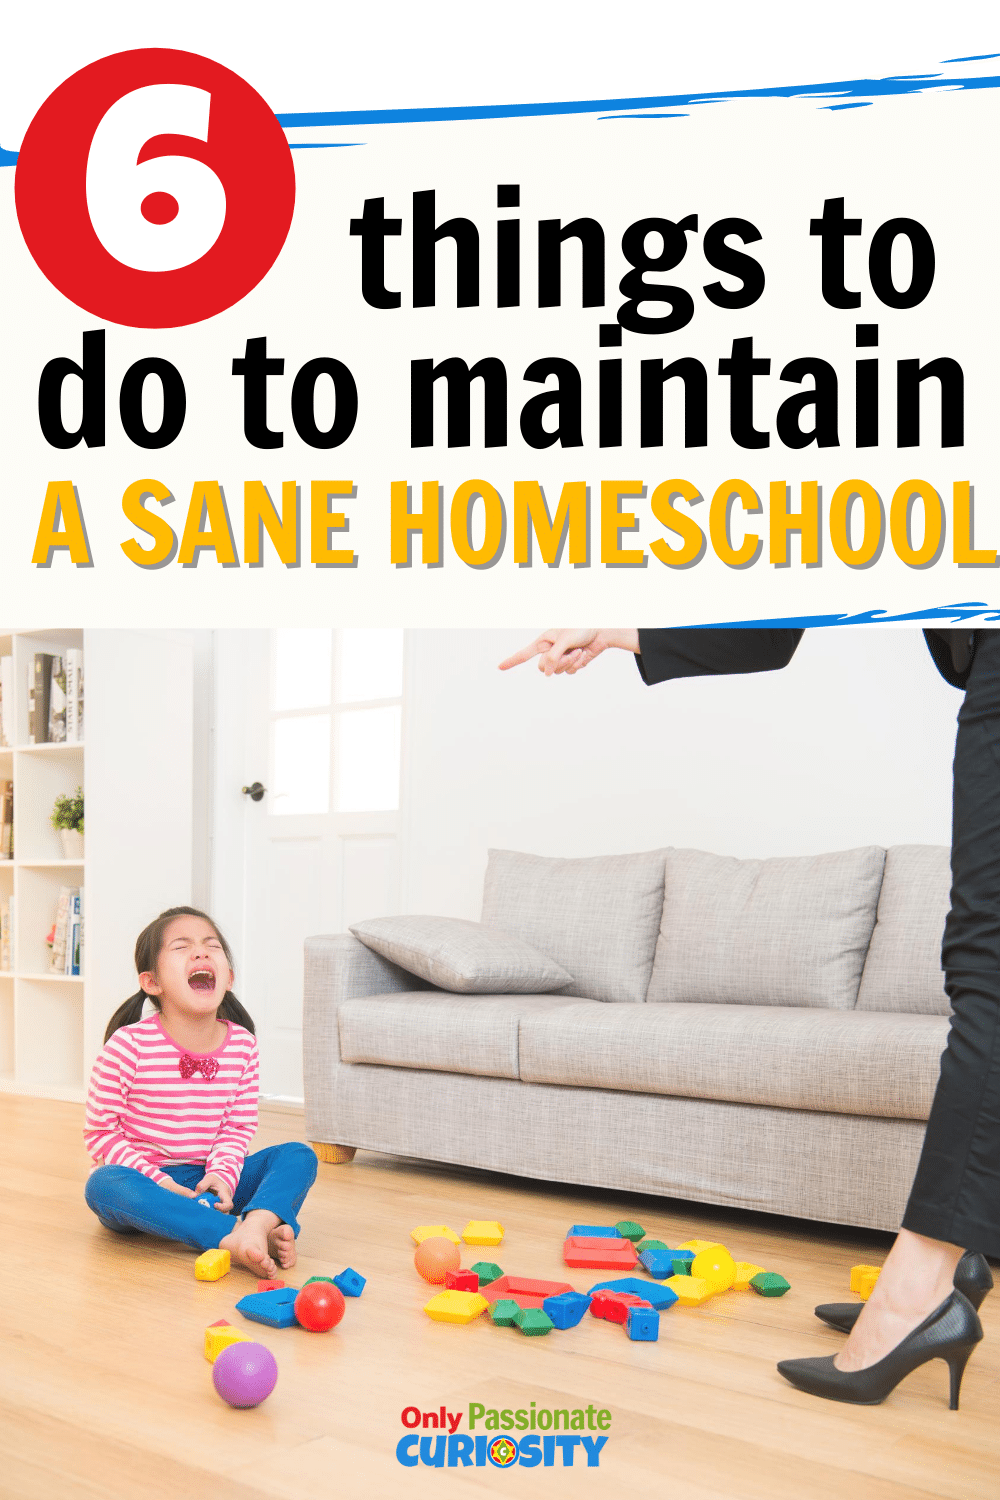 All of us have a lot to do and a lot going on--which leads me to Homeschool Scheduling 101 topic. Here are tips to stay sane while homeschooling. #Homeschool #HomeschoolTips #Scheduling